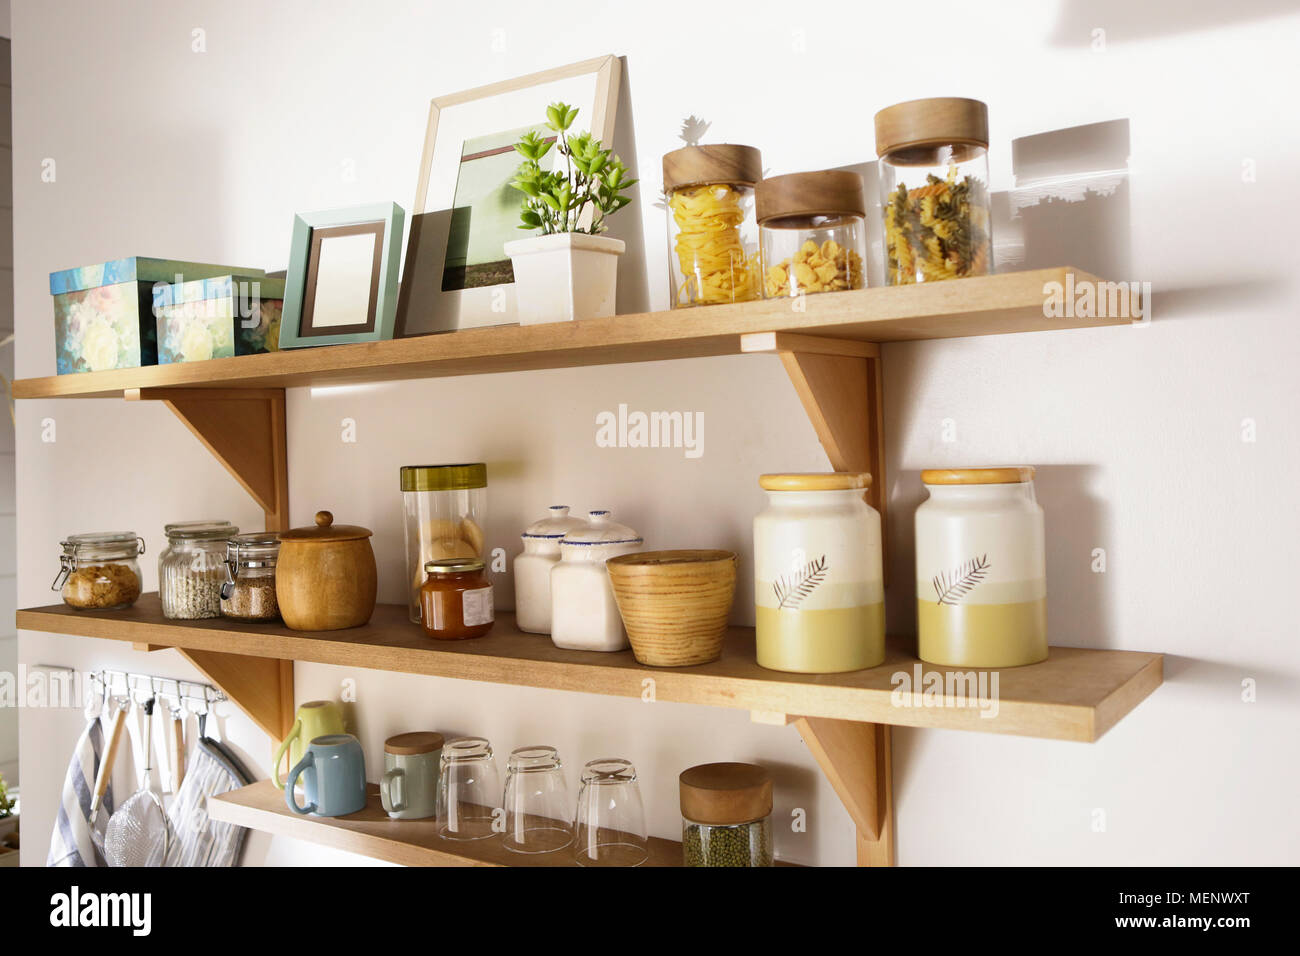 wooden shelf carry a lot of stuff on the wall of kitchen Stock Photo